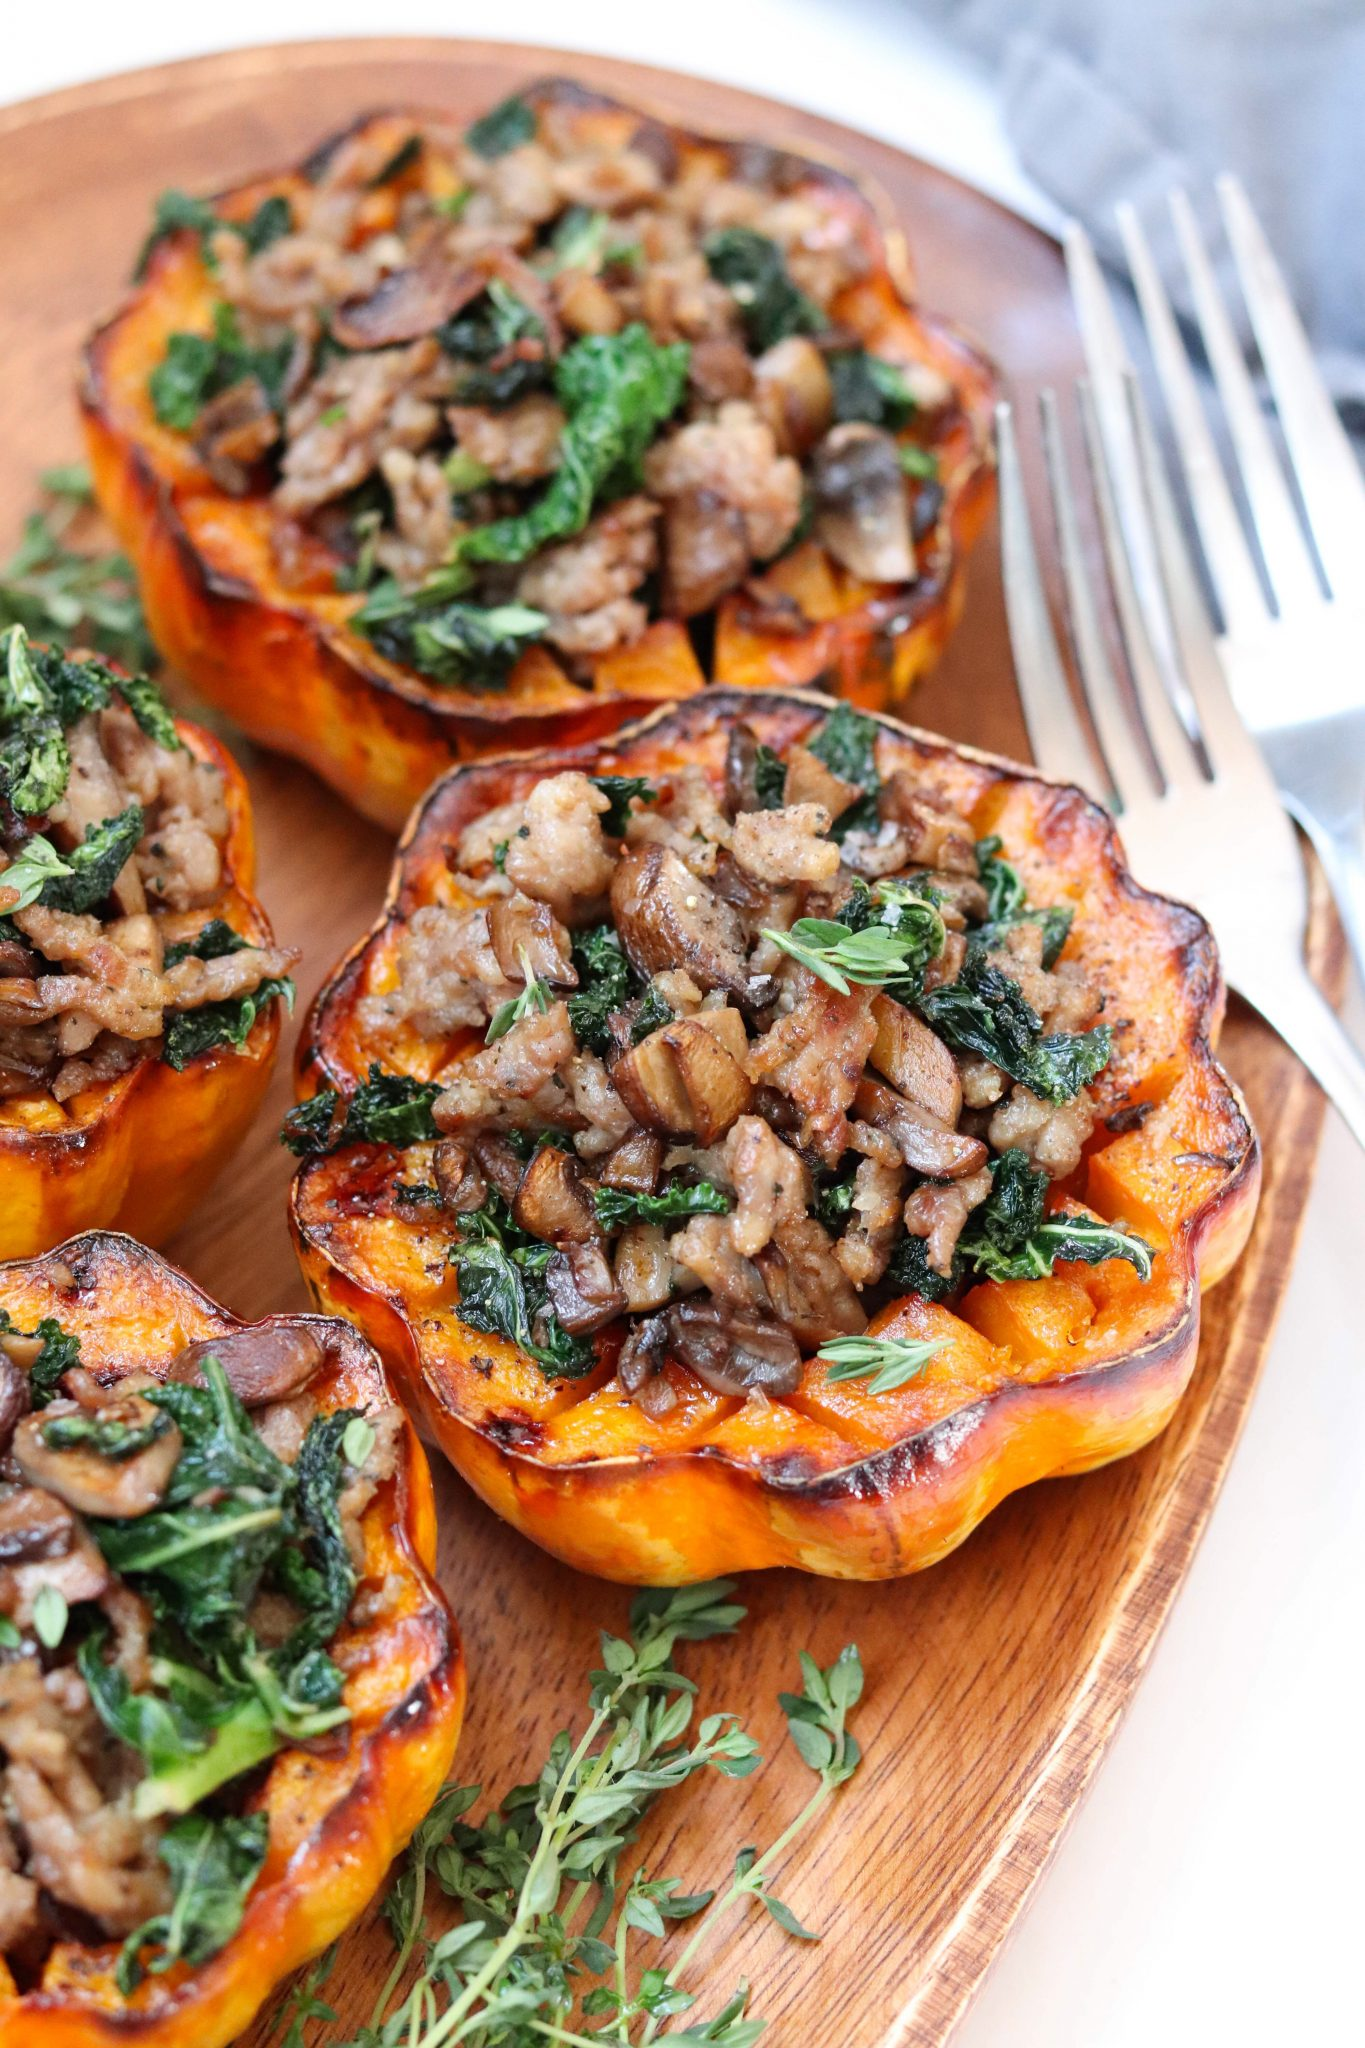 An absolutely delicious fall Whole30 dinner - Acorn Squash is roasted and stuffed with sausage and sautéd mushrooms and kale.